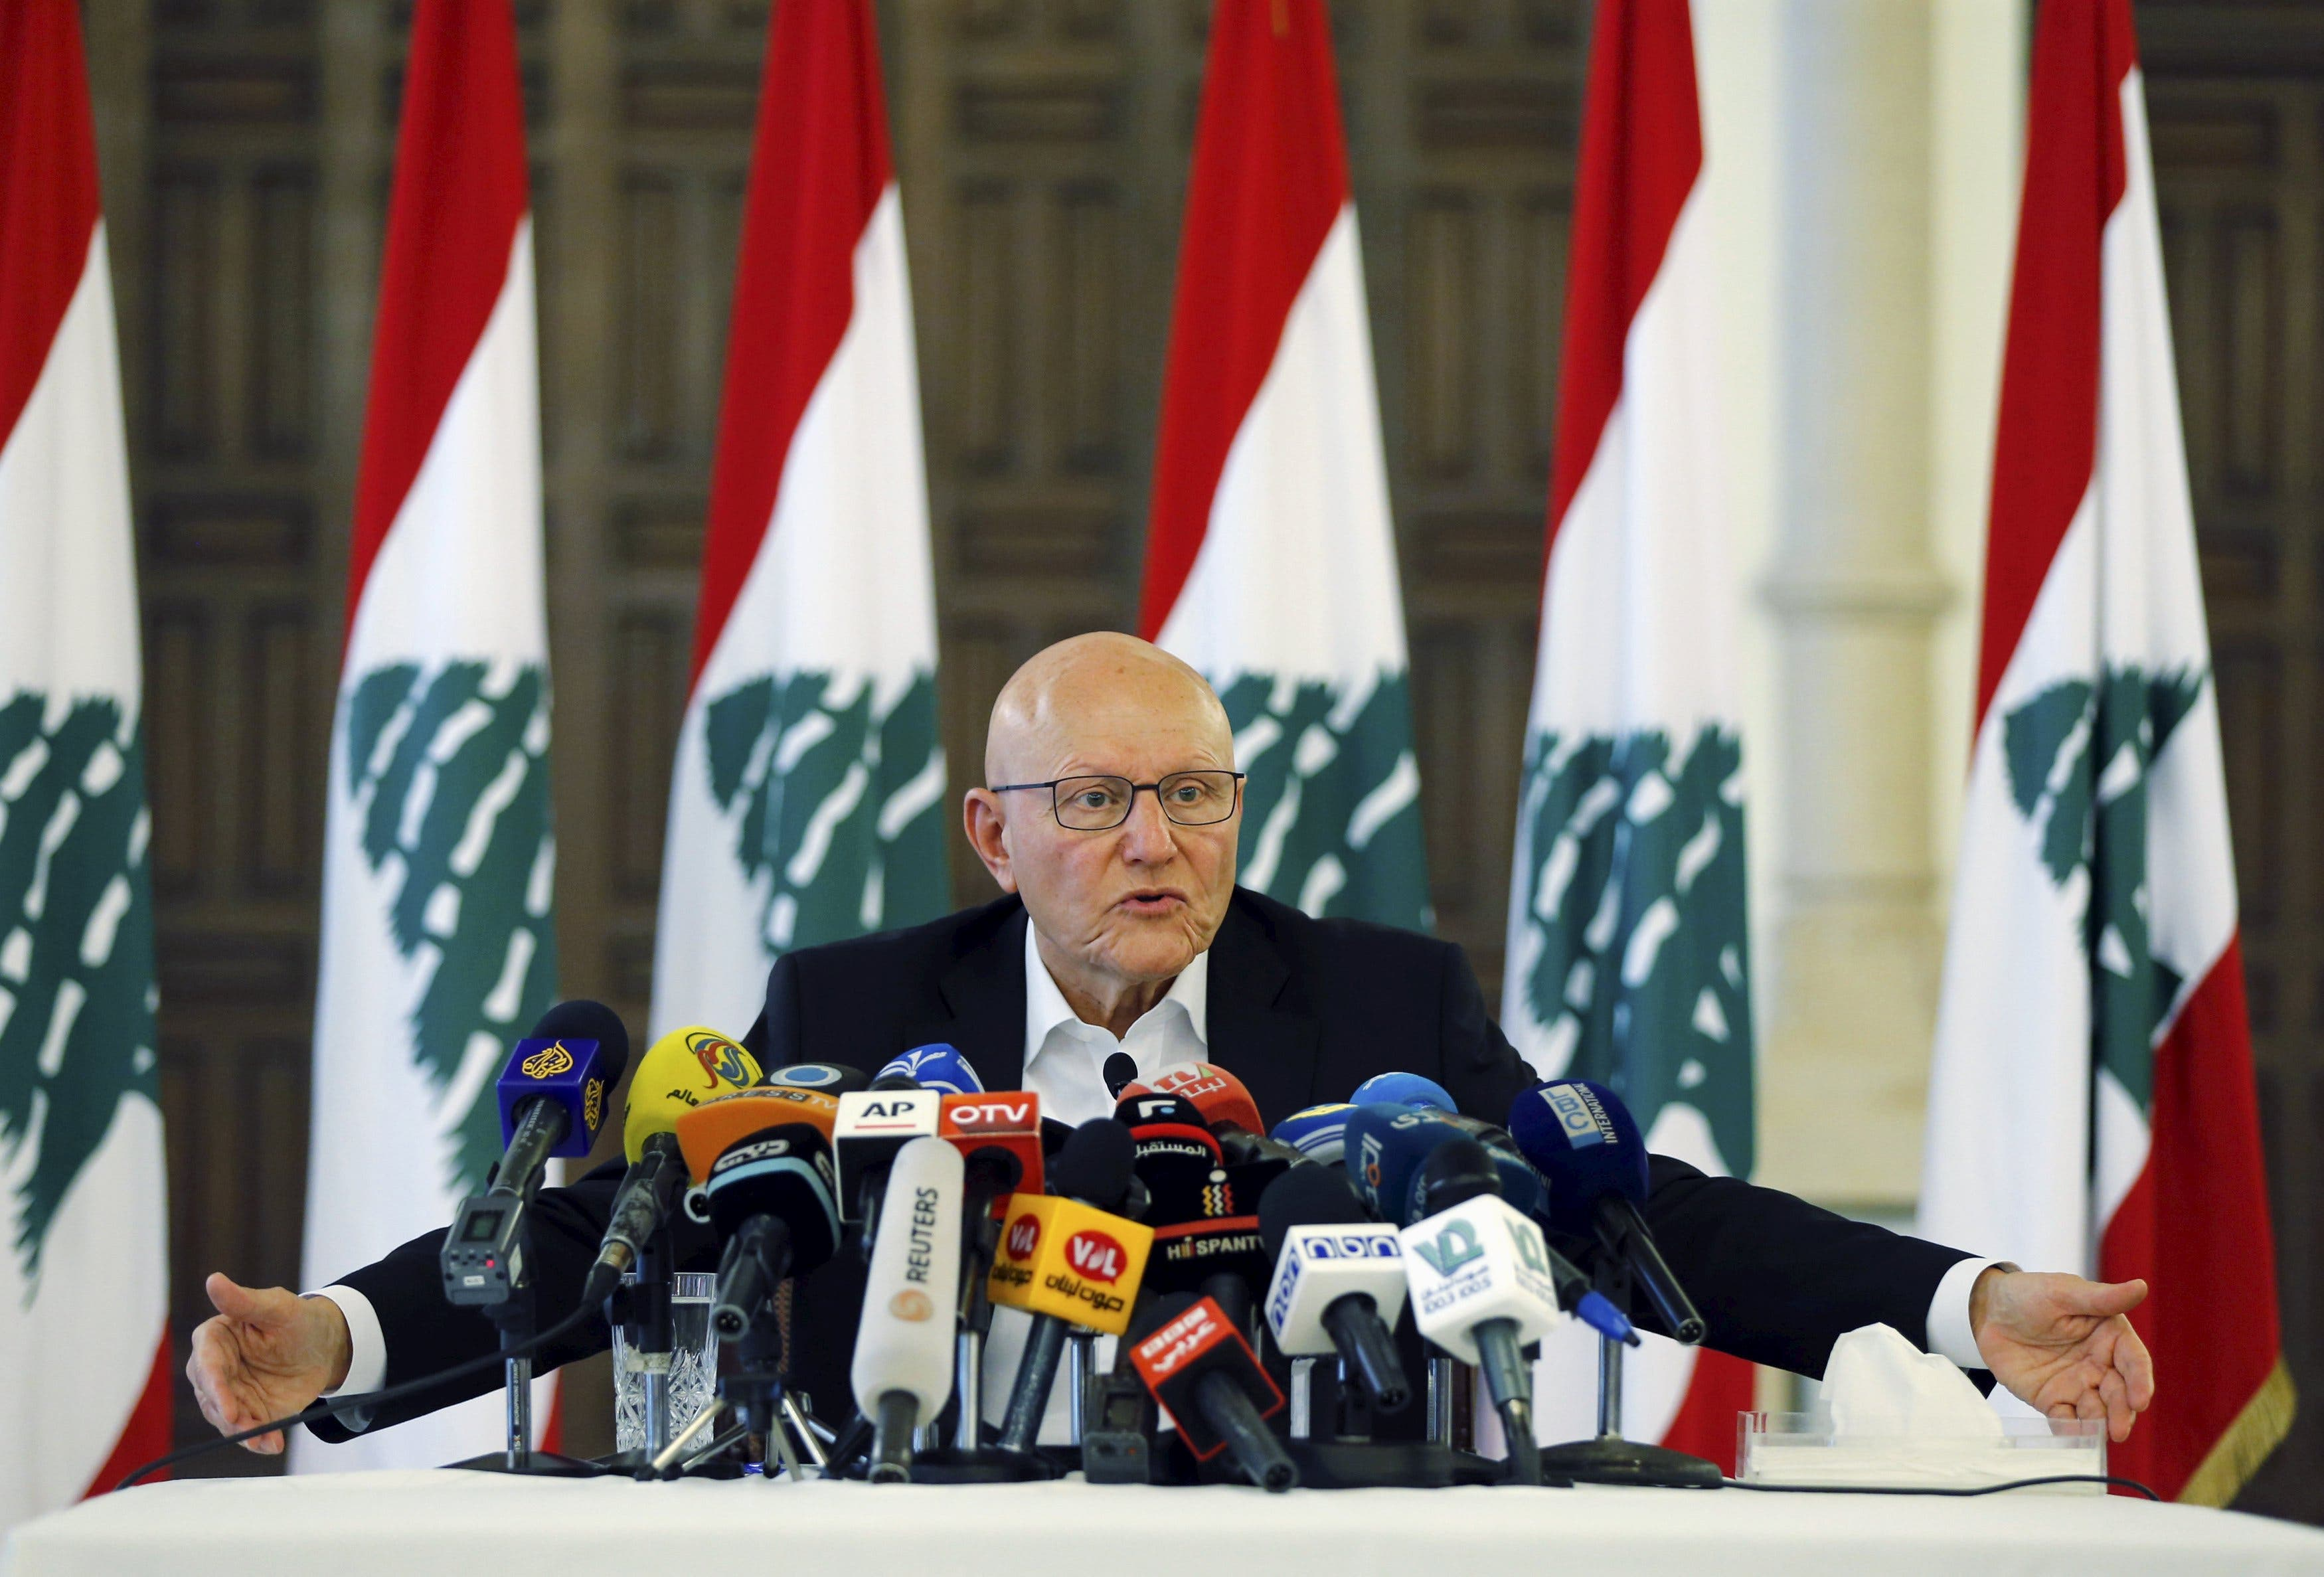 Lebanon's Prime Minister Tammam Salam speaks during a news conference at the government palace in Beirut, Lebanon, August 23, 2015. (Reuters)